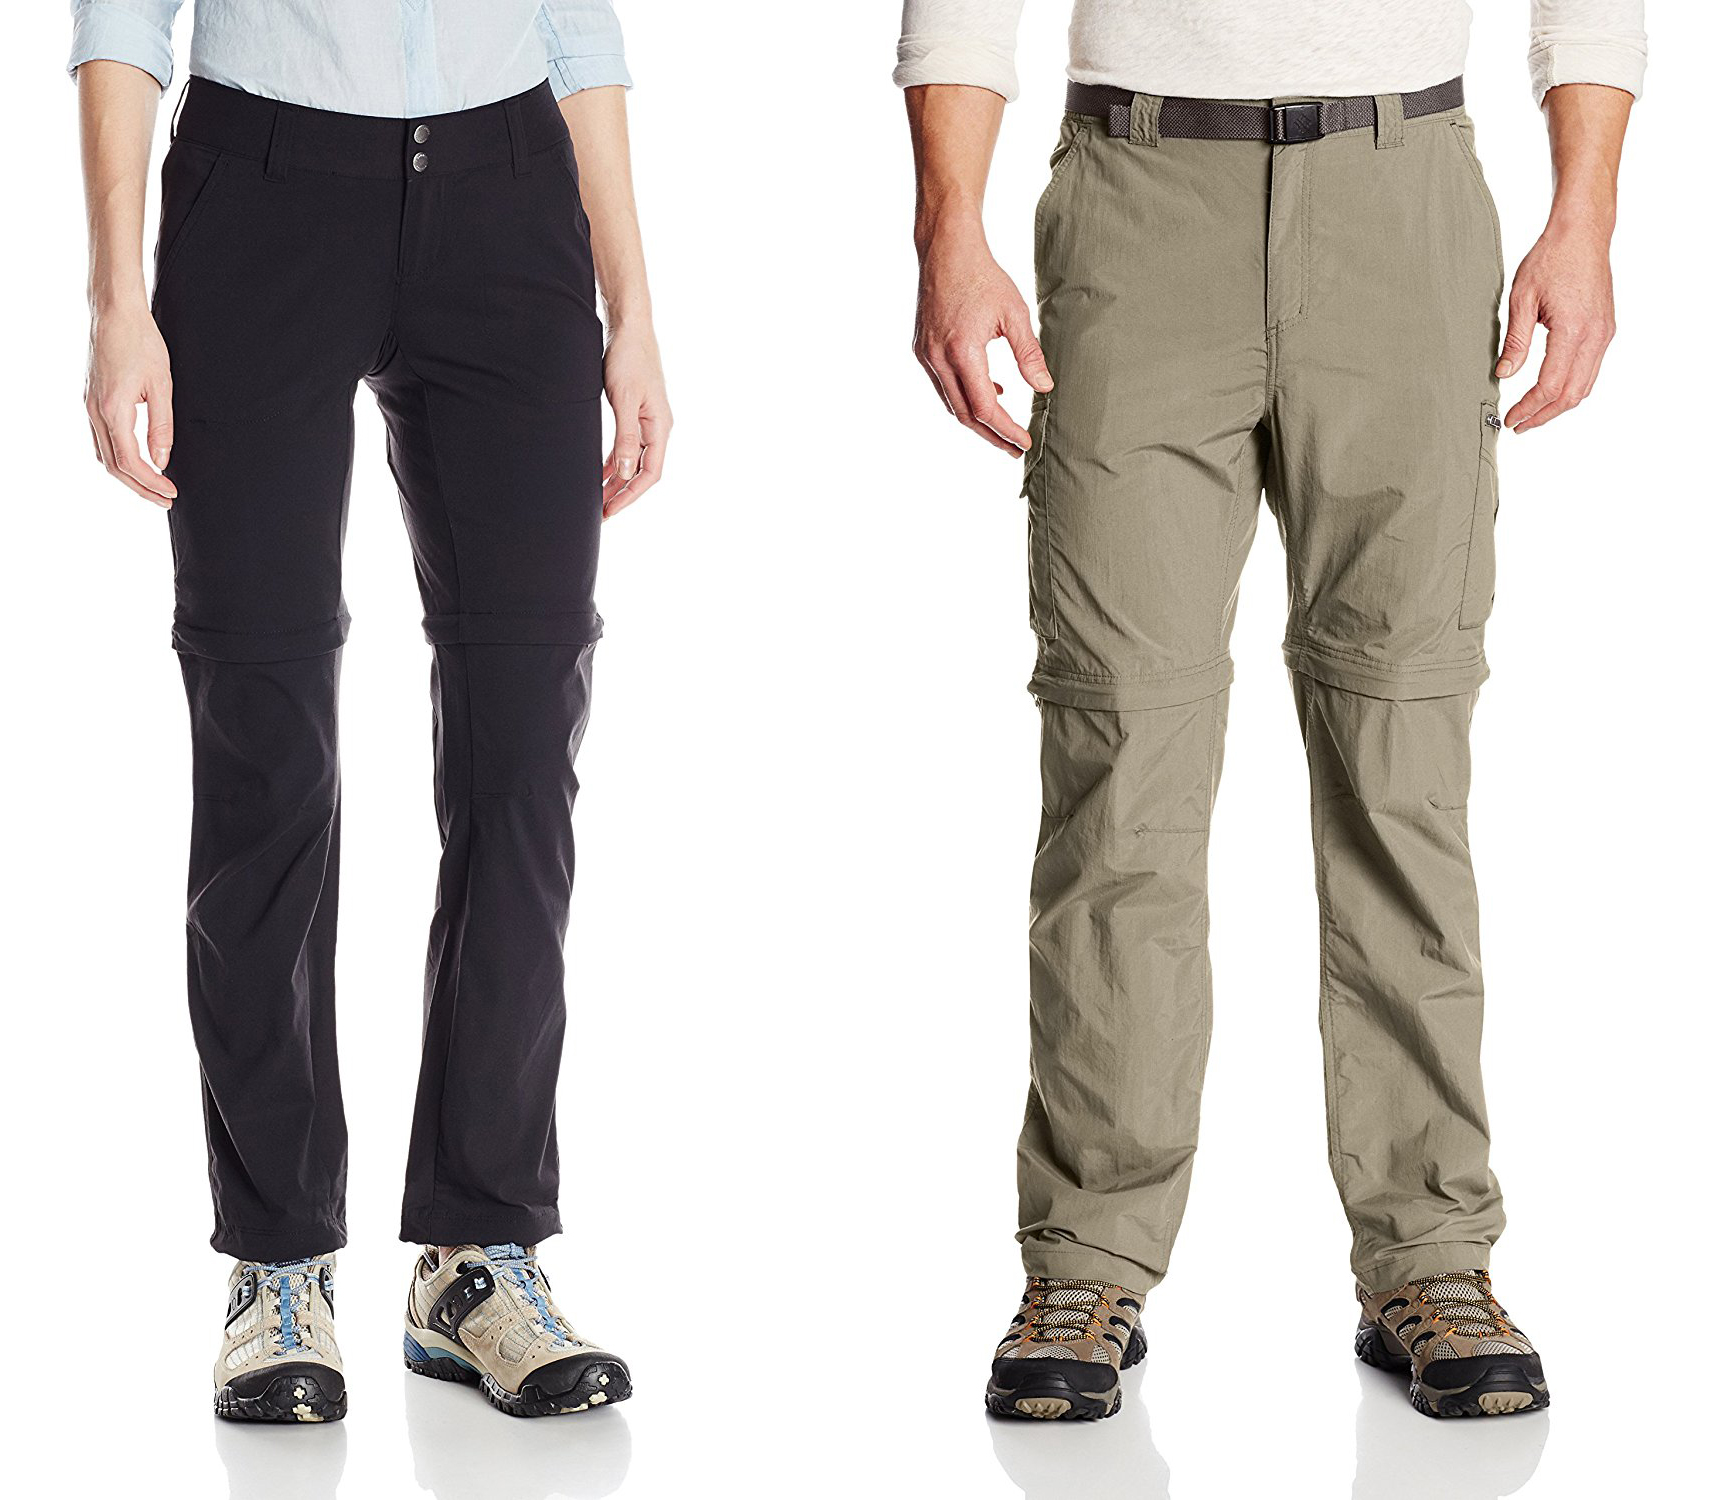 Columbia Silver Ridge Convertible Pants (Hiking pants men) & Columbia Saturday Trail Stretch Convertible Pants (Hiking Pants Women)